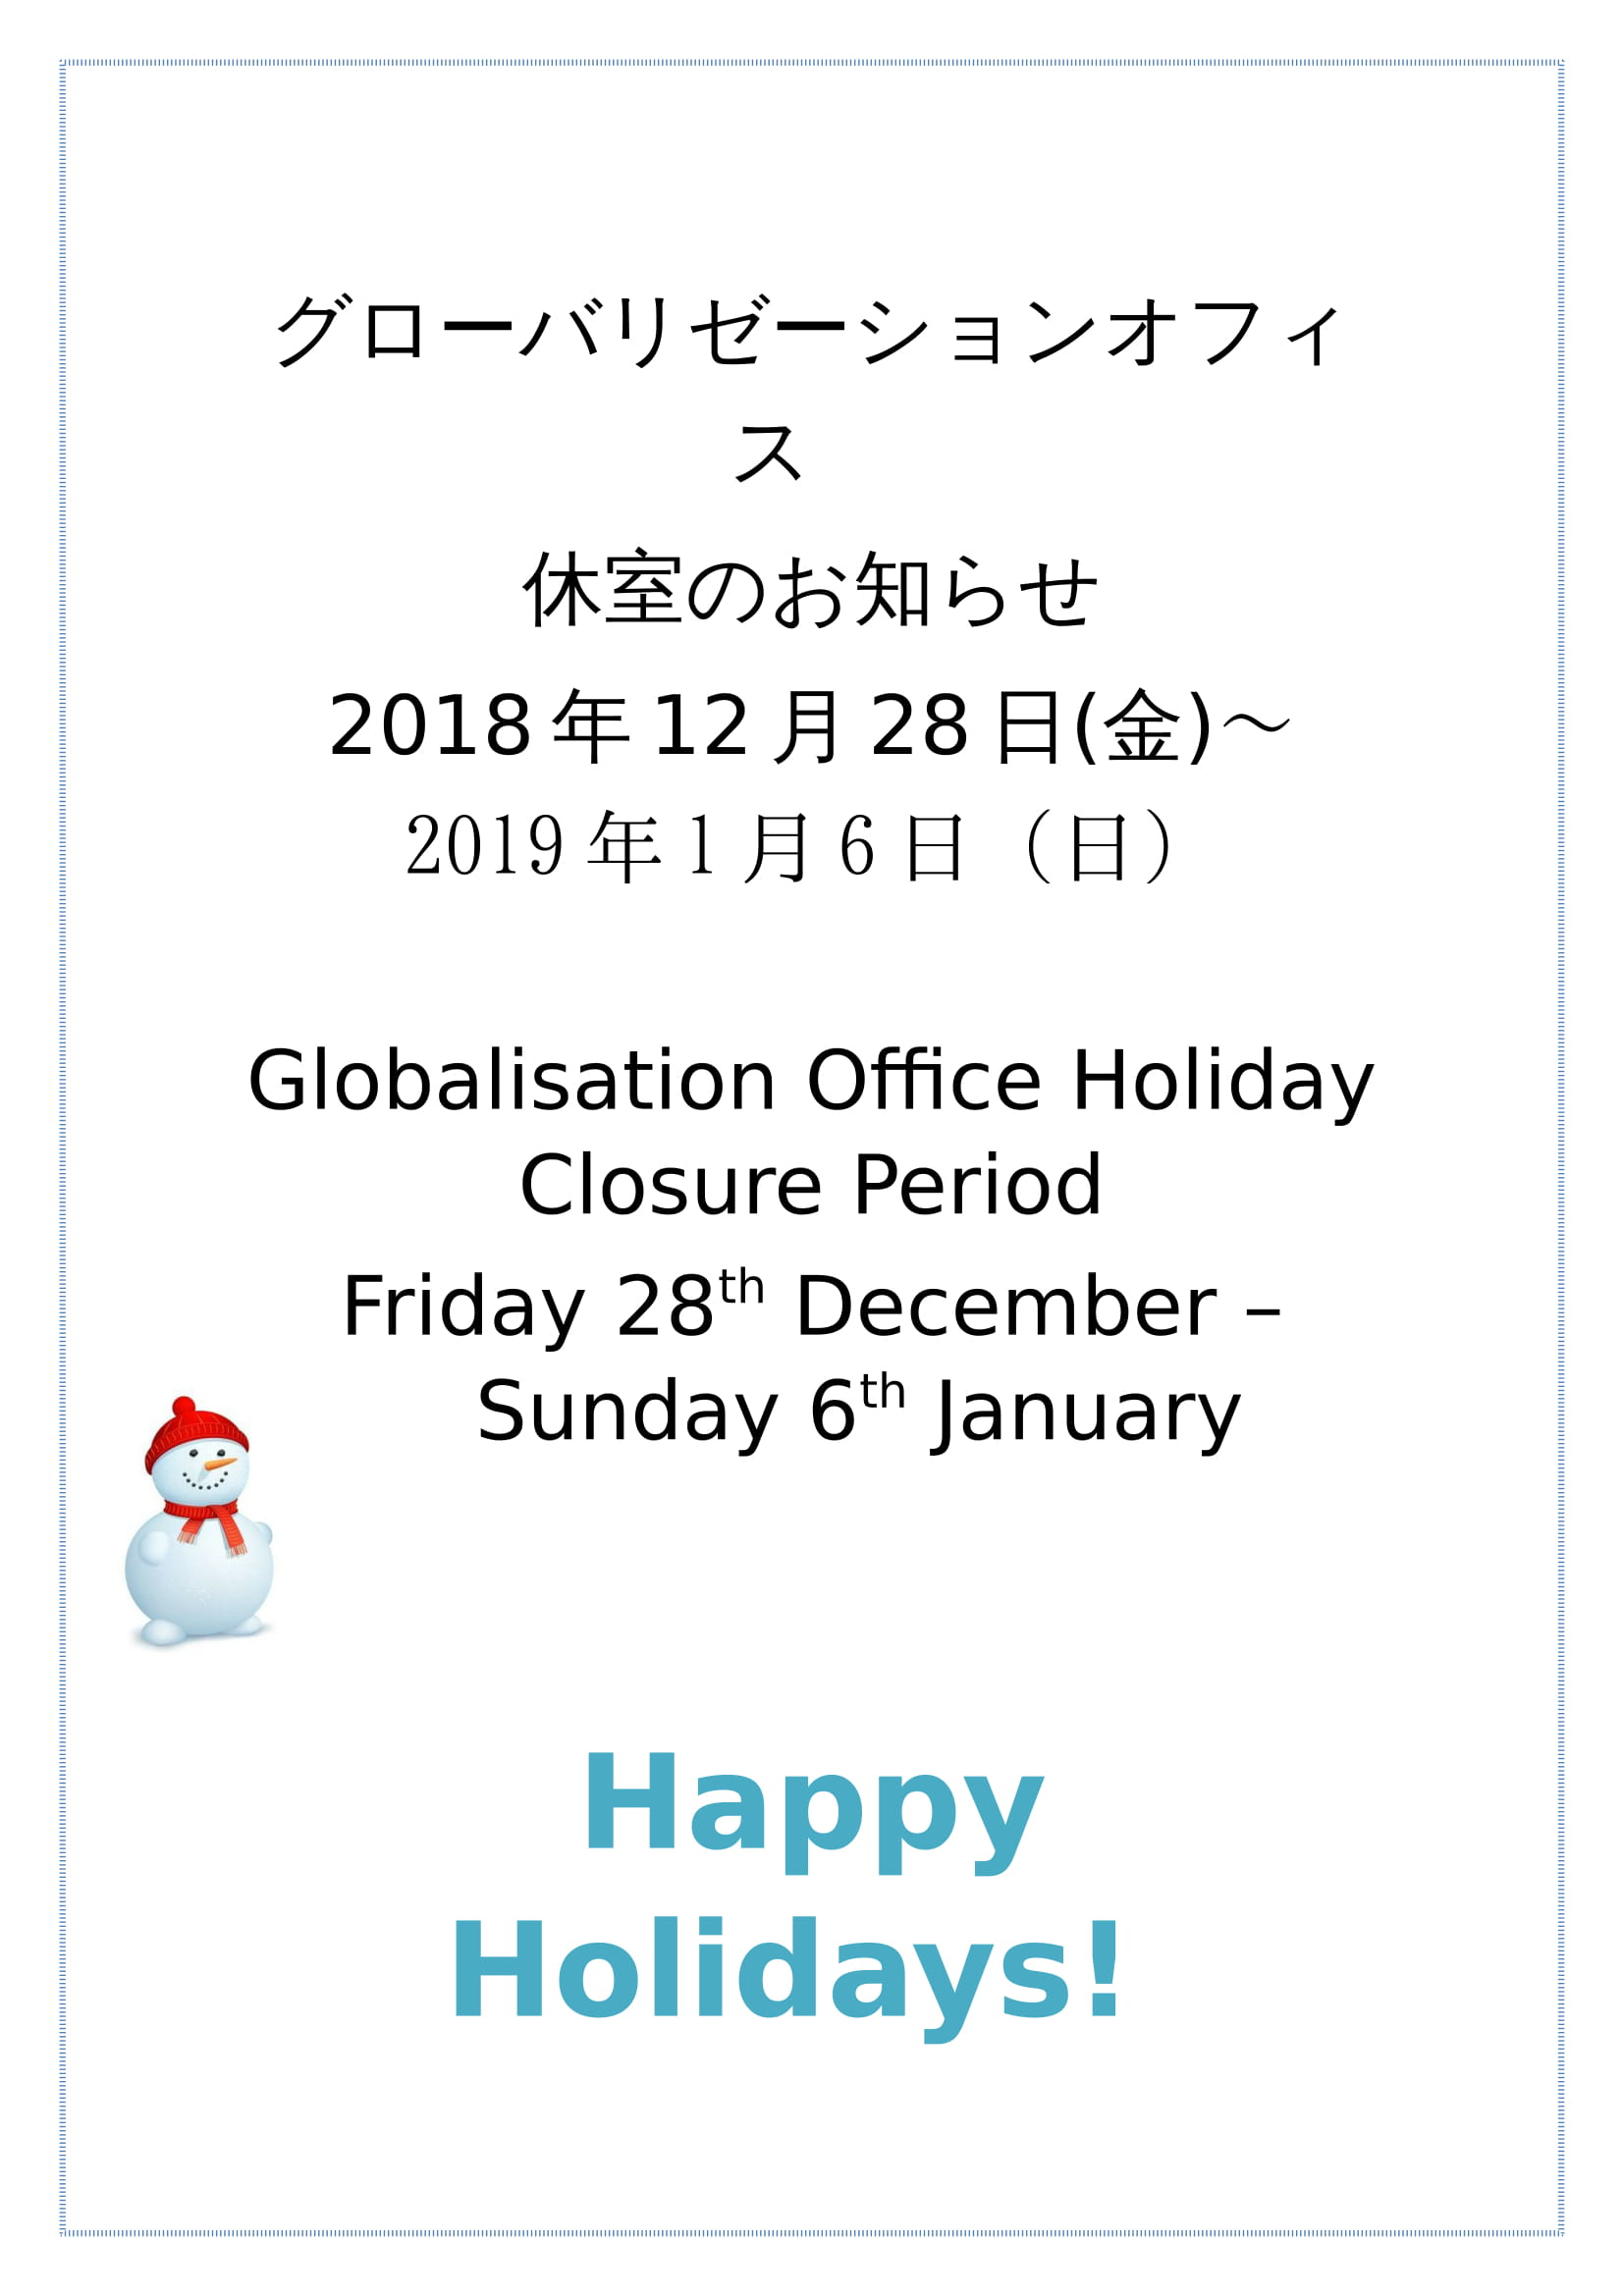 Holiday closure period notice-1